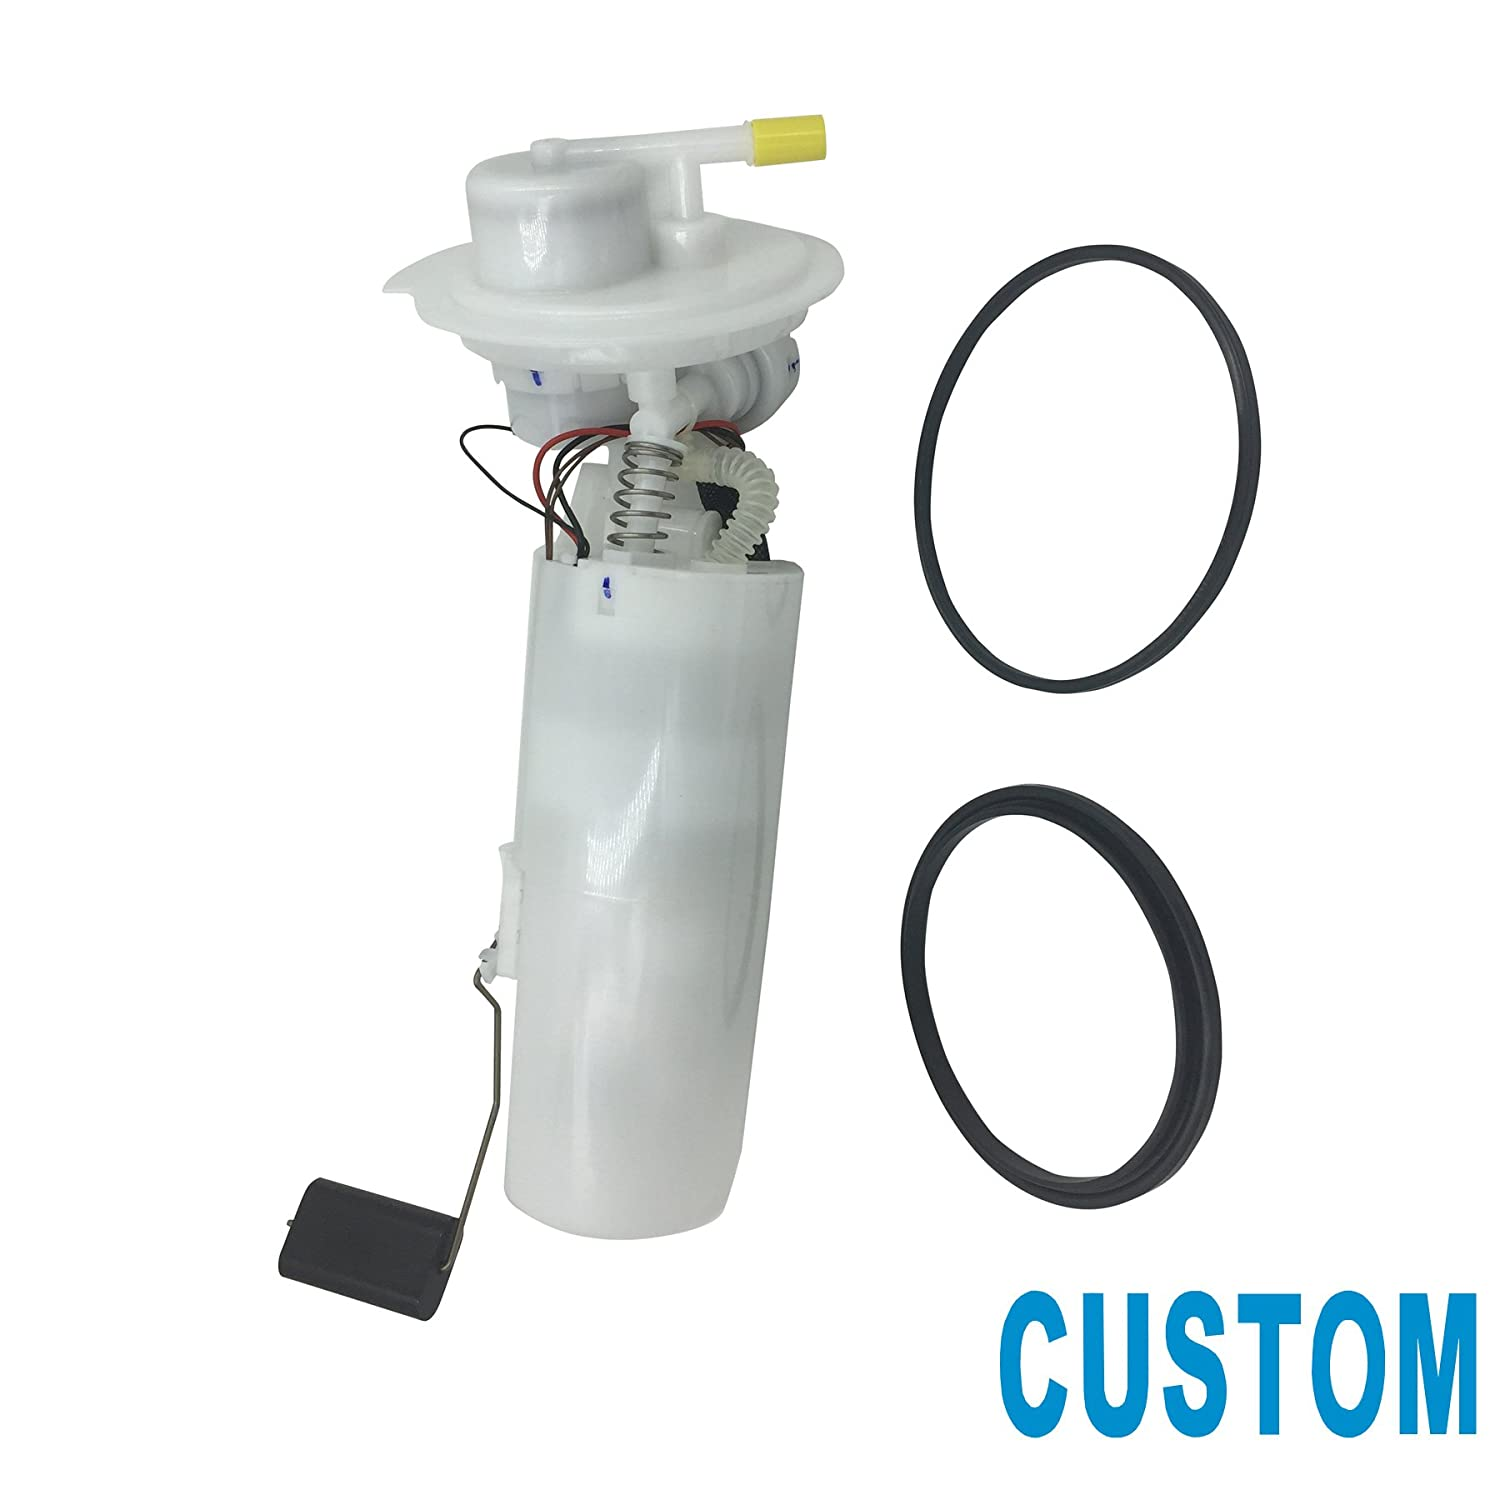 Fuel Pump /& Assembly For 2002-2003 Ford Explorer Mercury Mountaineer E2352M